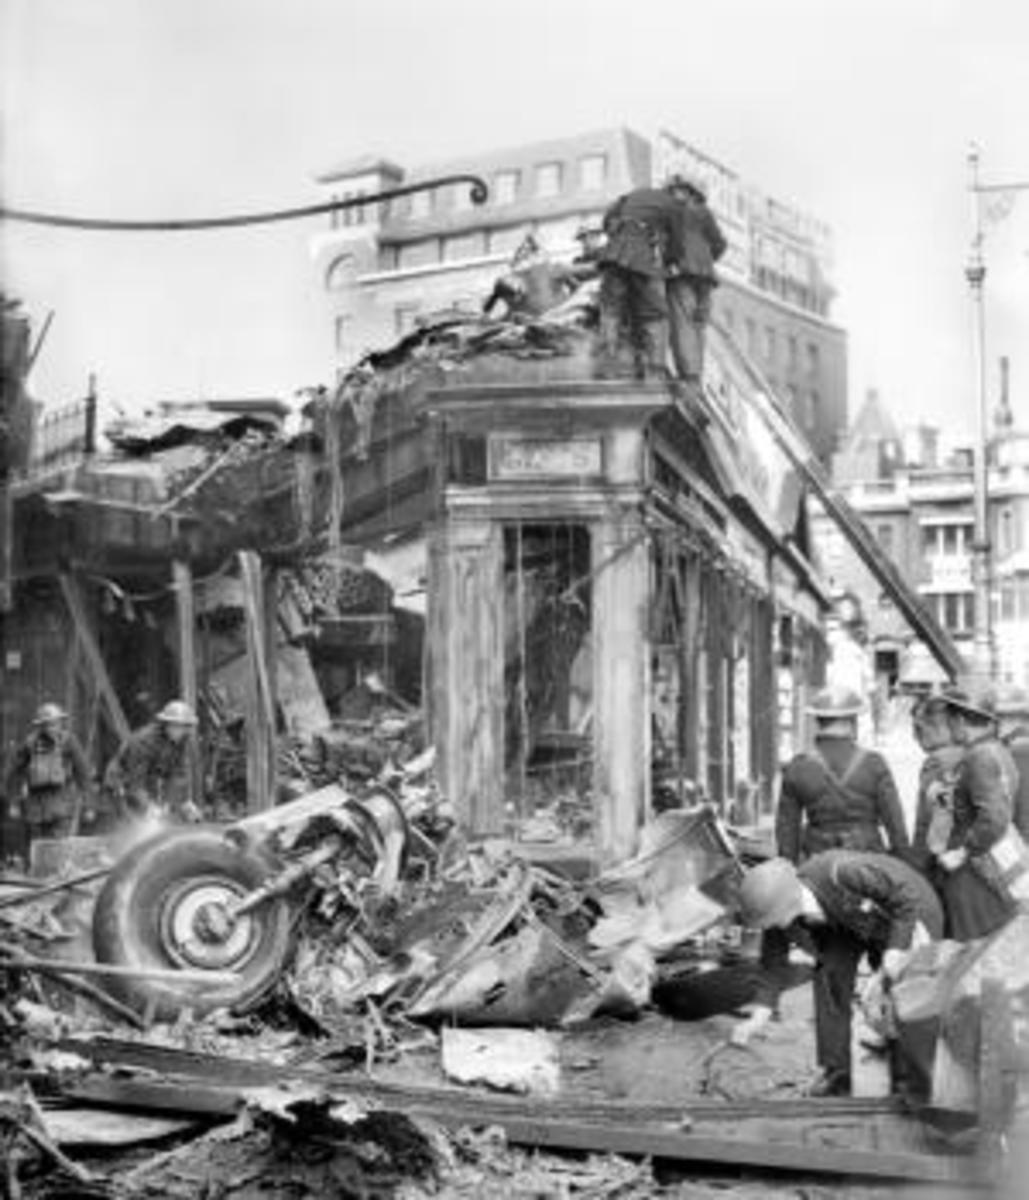 Wreckage of the bomber that Ray Holmes brought down. (Credit: Planet News Archive/SSPL/Getty Images)